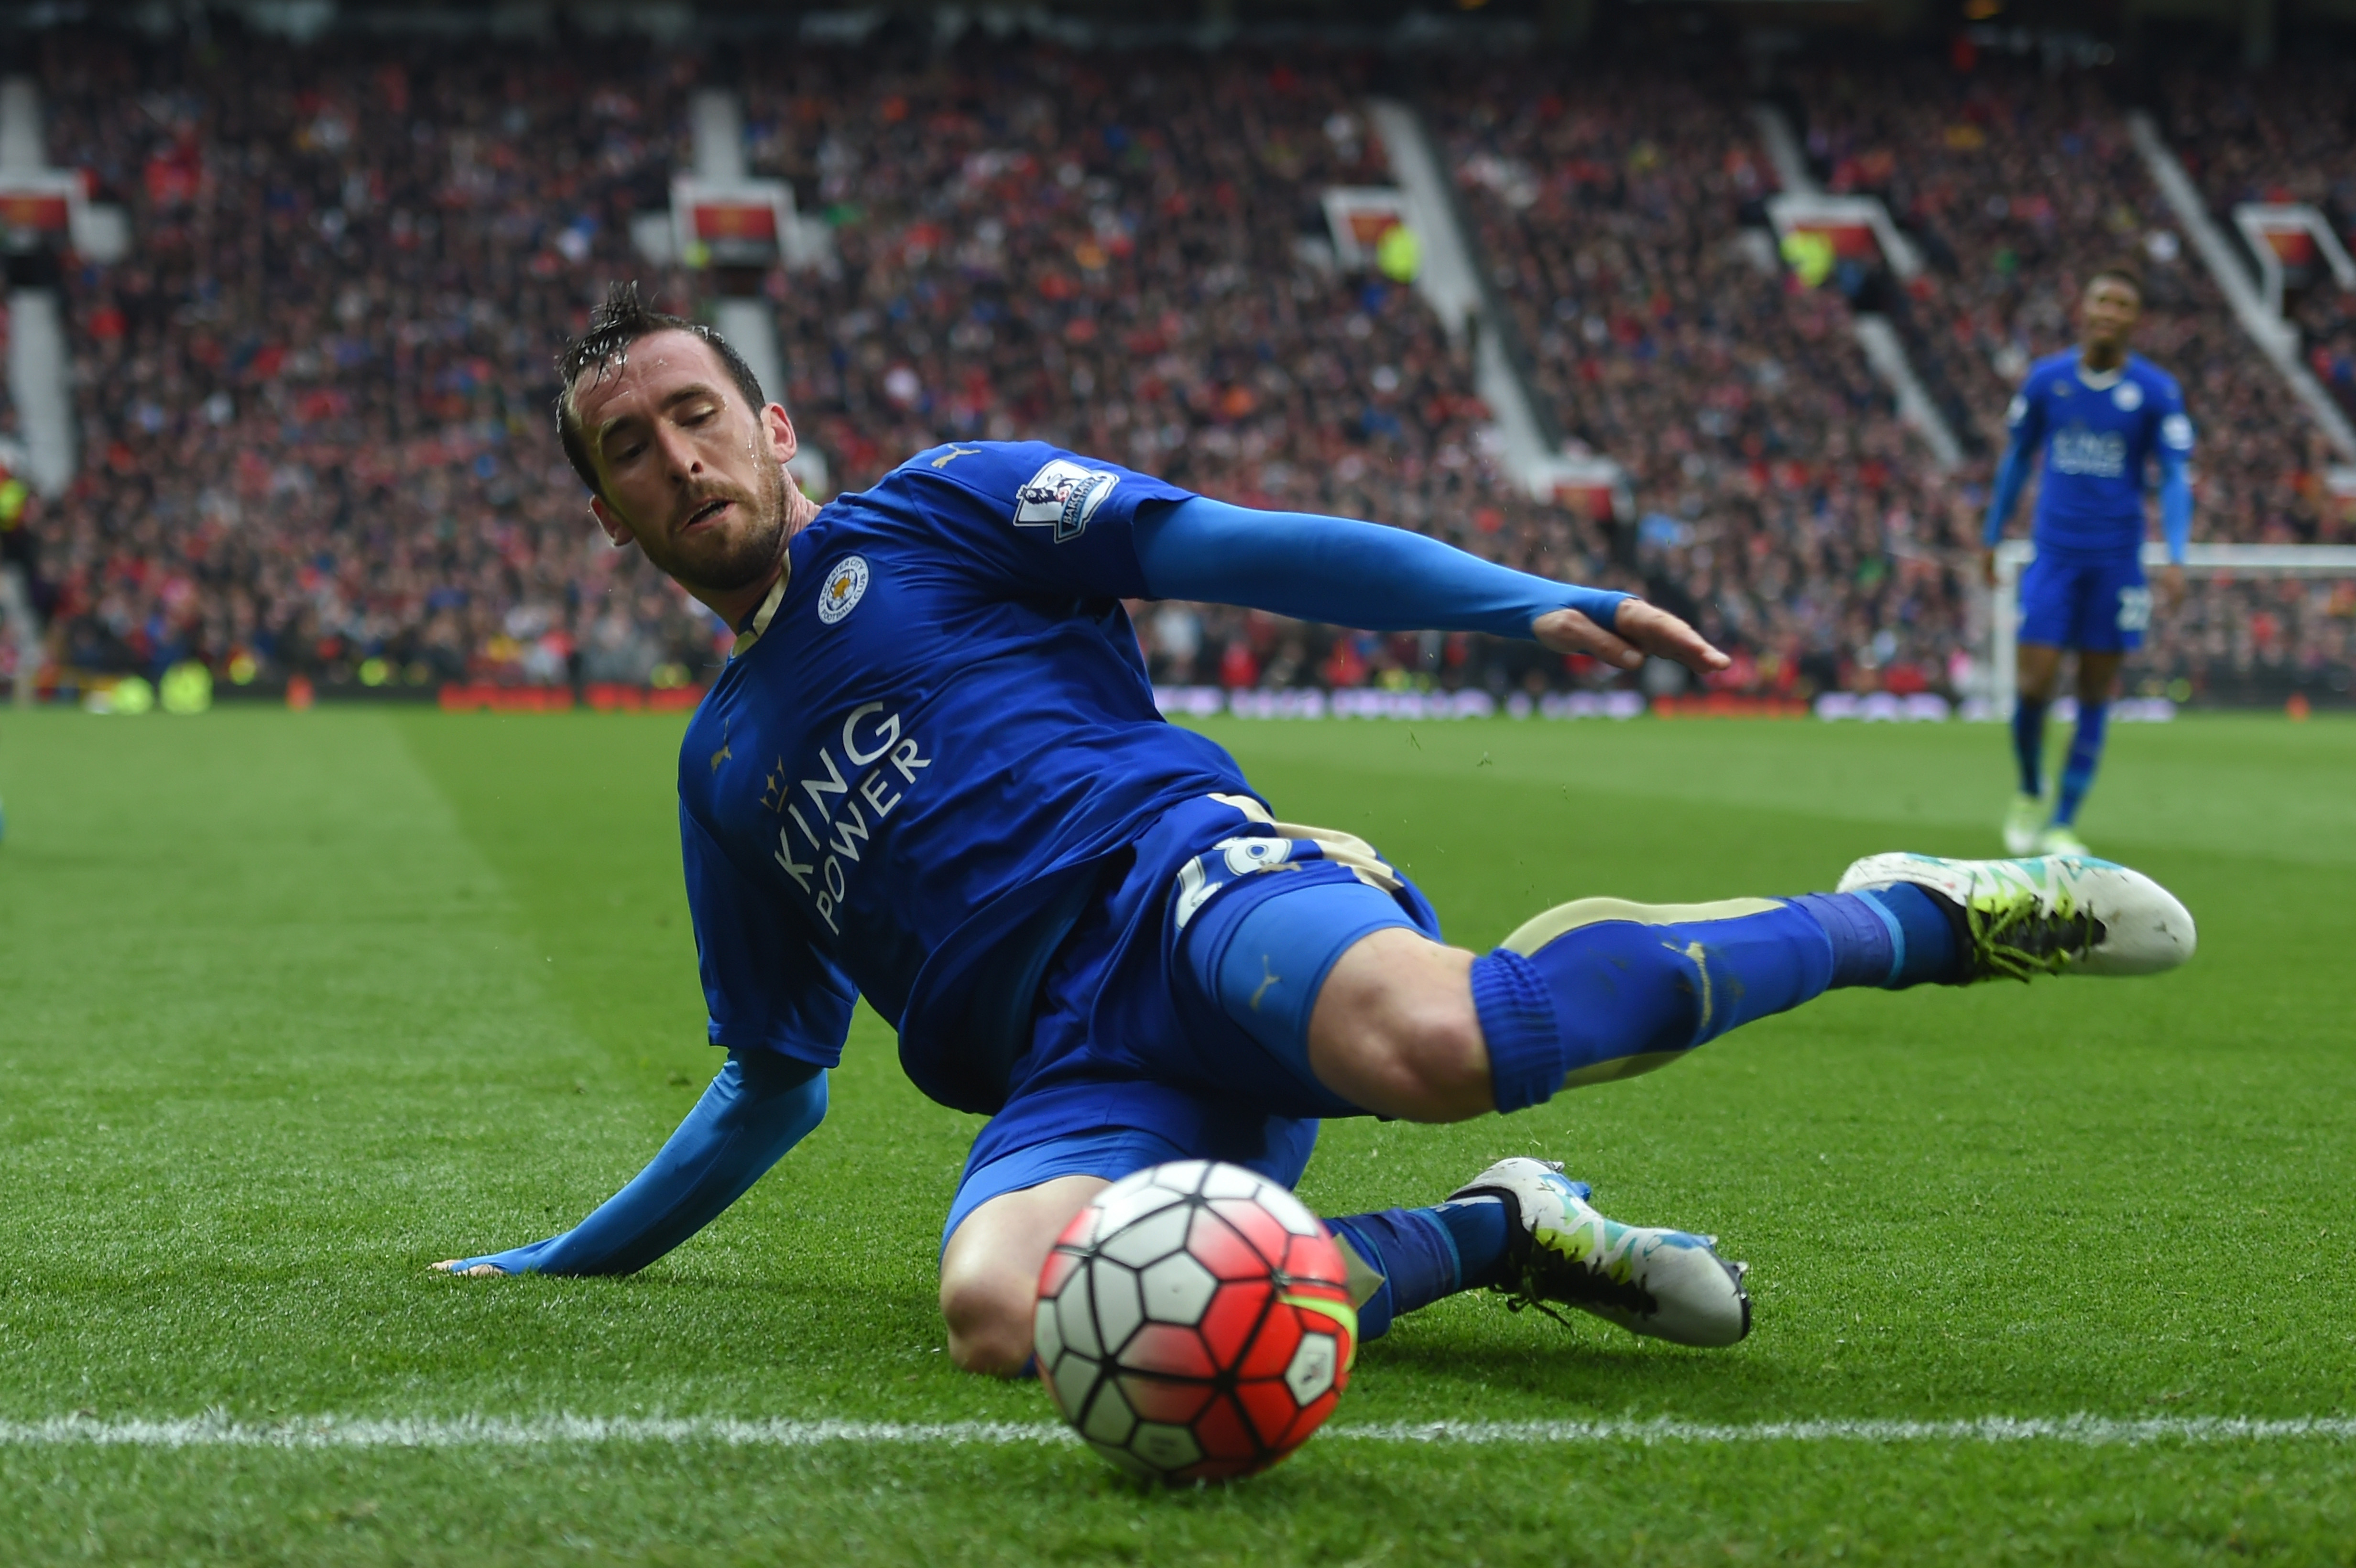 MANCHESTER, ENGLAND - MAY 01: Christian Fuchs of Leicester City slides for the ball during the Barclays Premier League match between Manchester United and Leicester City at Old Trafford on May 1, 2016 in Manchester, England. (Photo by Michael Regan/Getty Images)